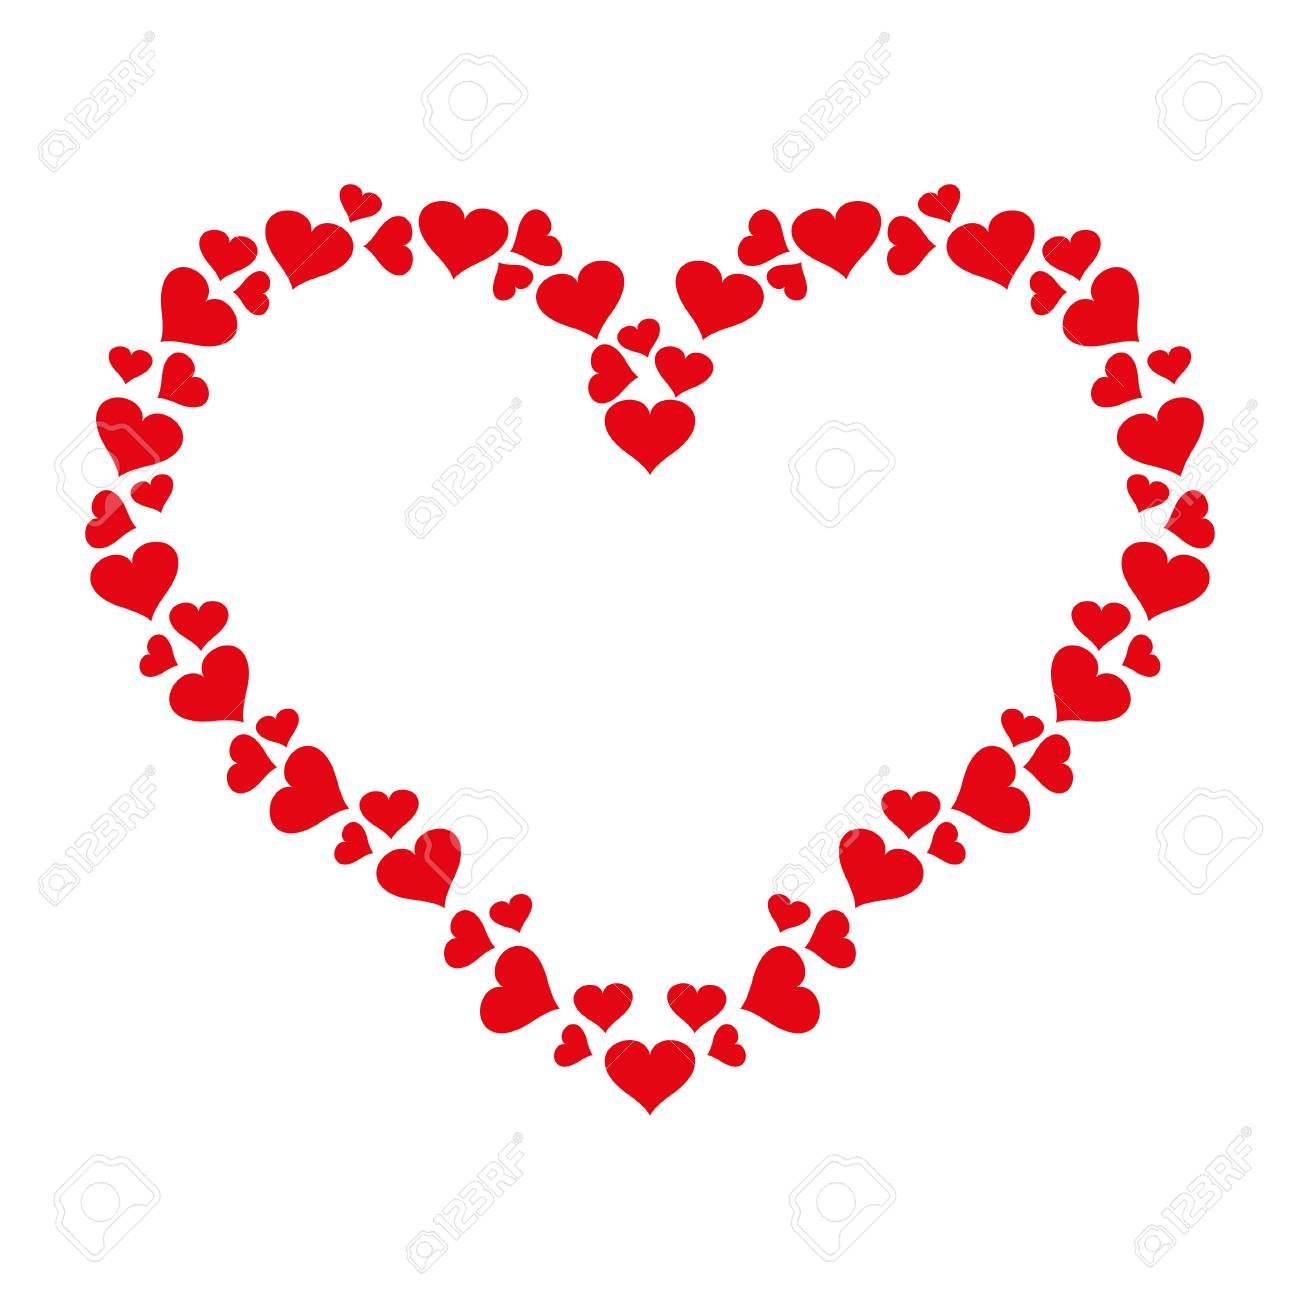 Heart Frame Of Small Hearts Icon Vector Love Symbol Valentine Royalty Free Cliparts Vectors And Stock Illustration Image 113852880 Download transparent heart frame png for free on pngkey.com. heart frame of small hearts icon vector love symbol valentine